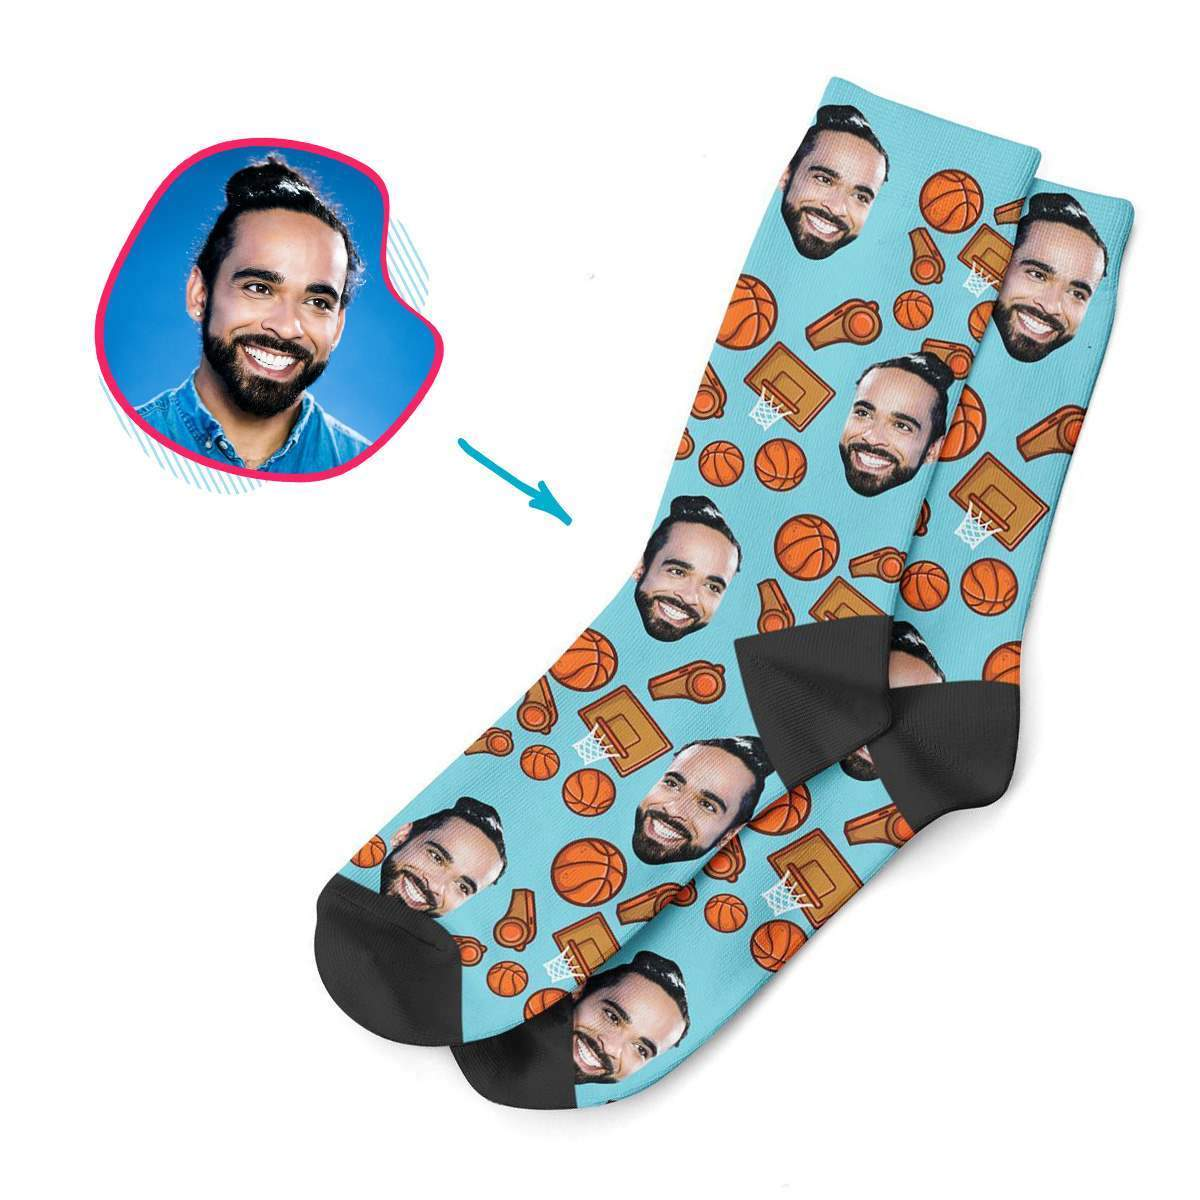 blue Basketball socks personalized with photo of face printed on them